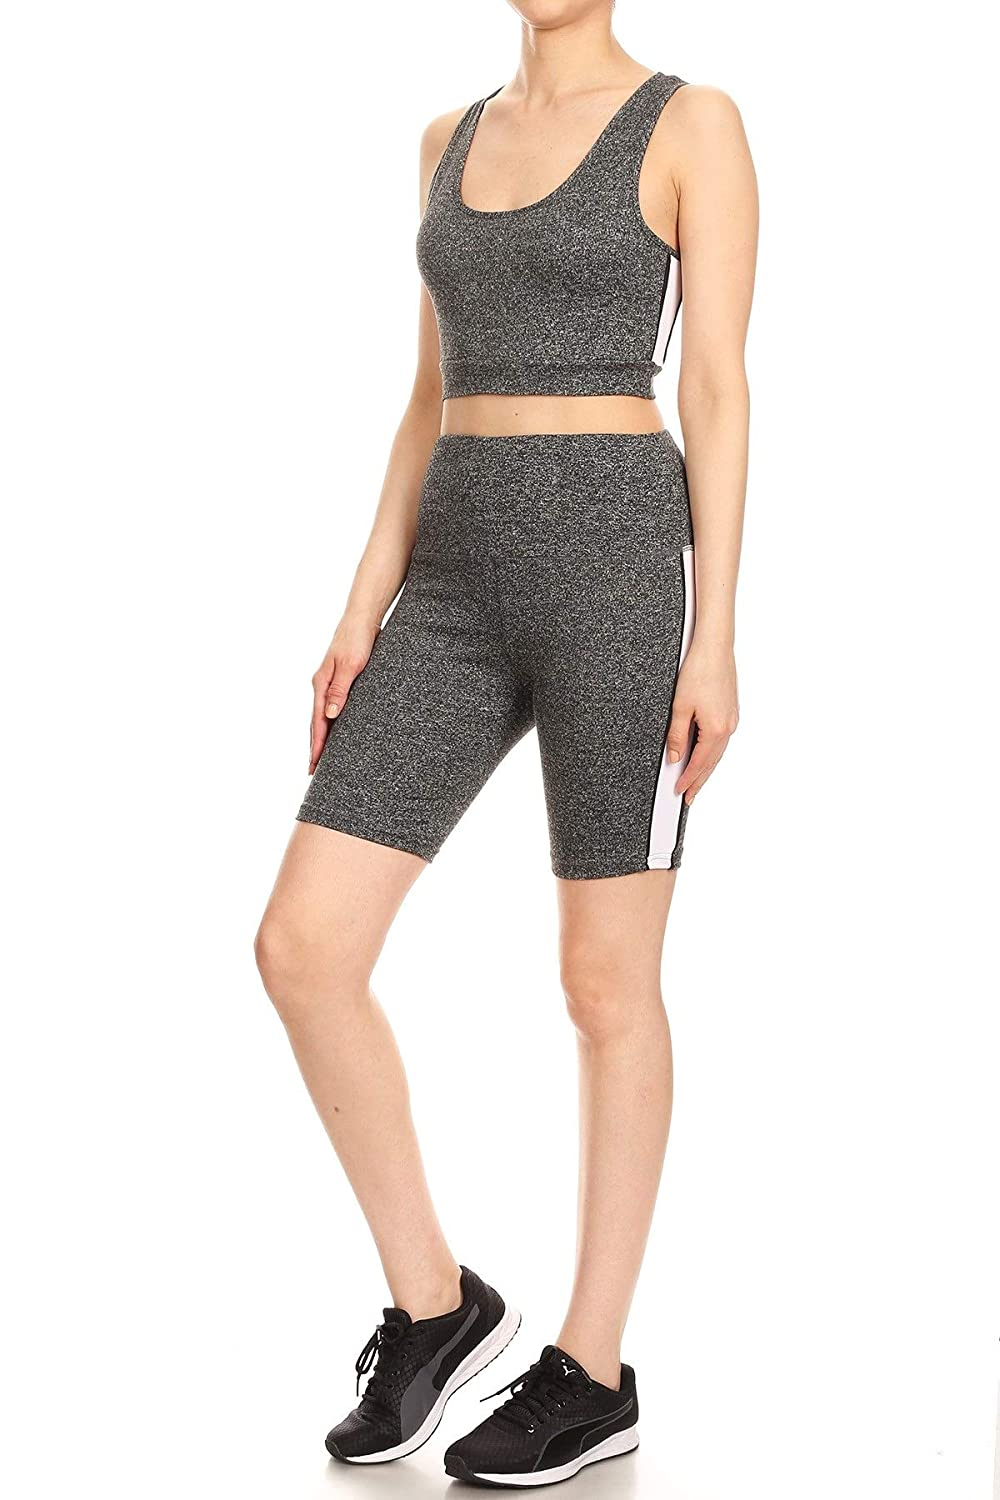 ShoSho Womens 2 Piece Activewear Sets Sports Tops and Yoga Bottoms Casual Outfits